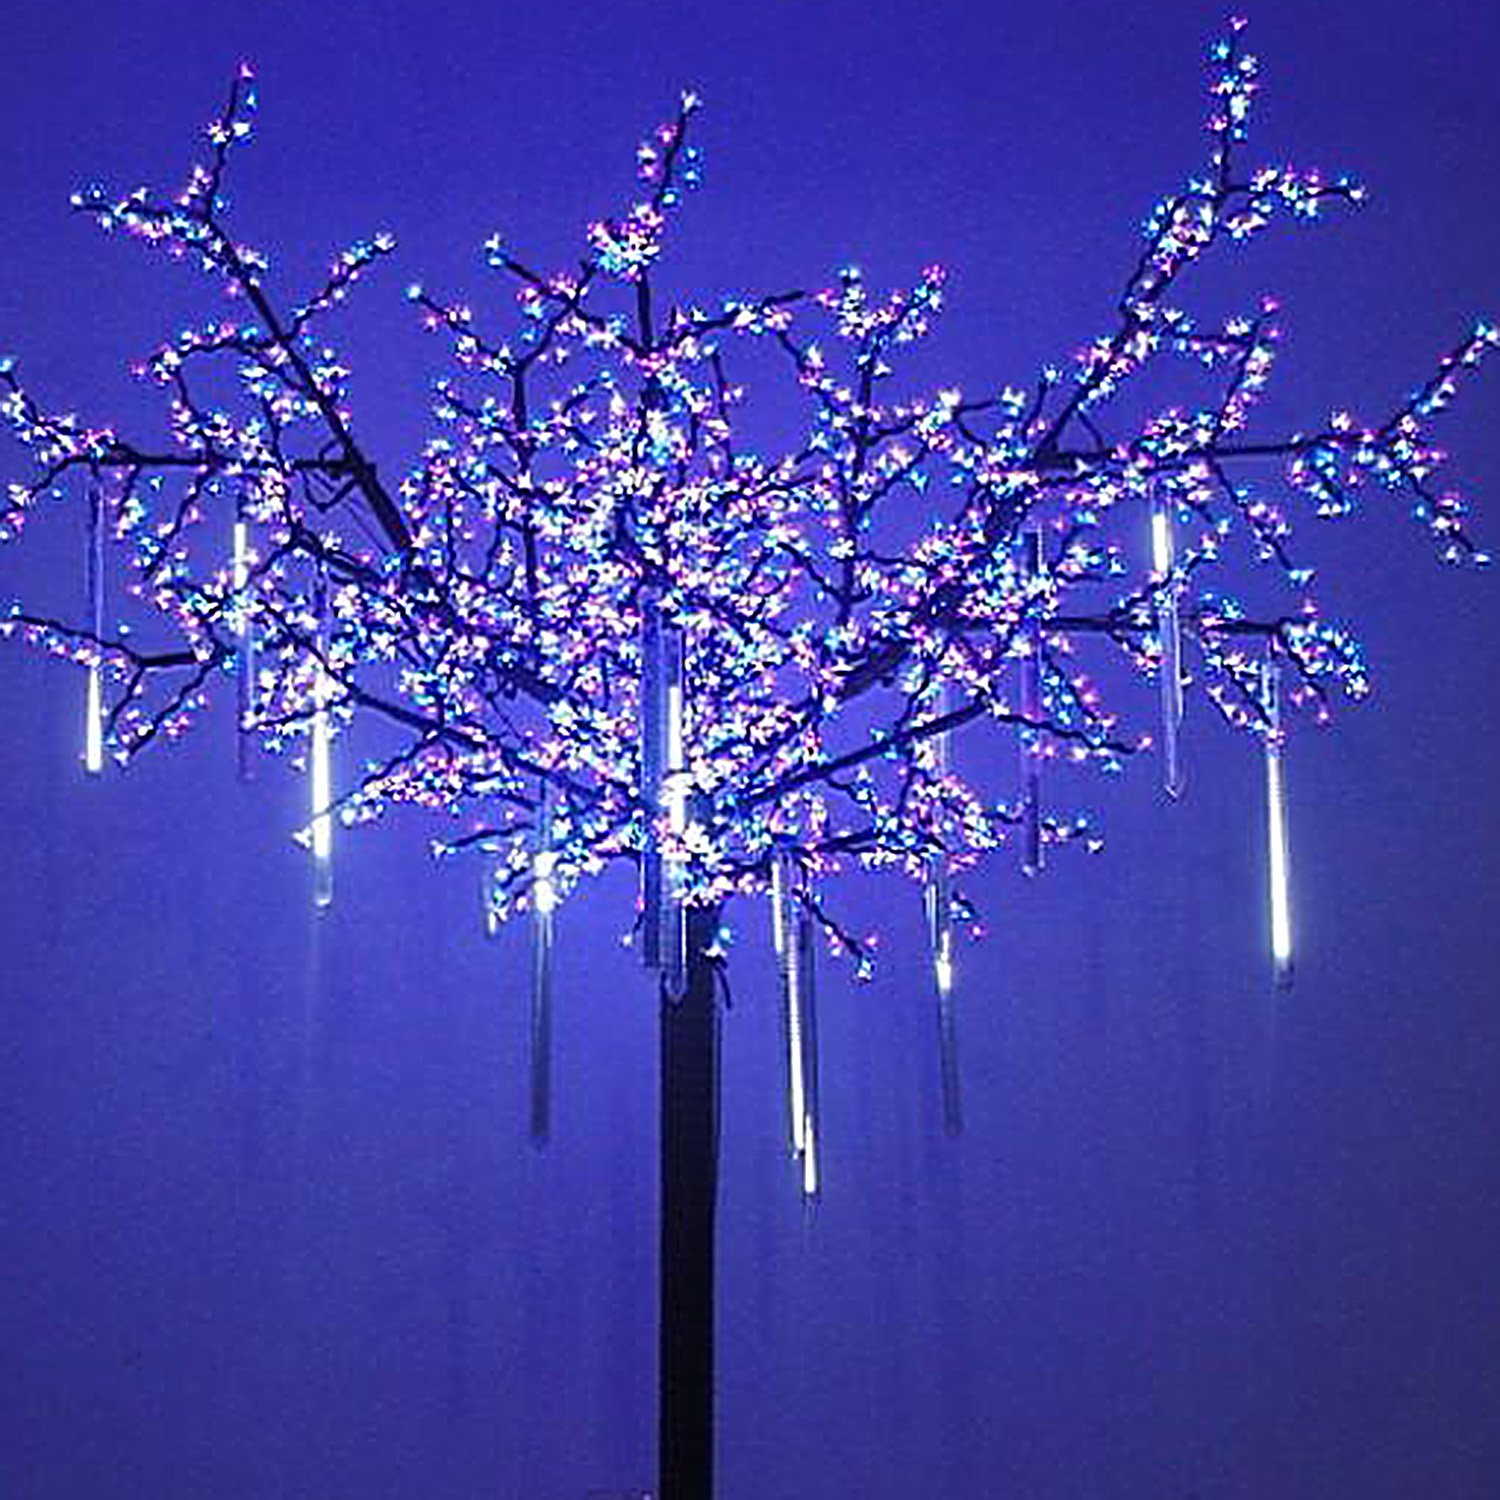 Fall Color String Lights : 8 Falling Rain Drop Icicle Snow Fall String LED Xmas Tree Cascading Light Decor eBay